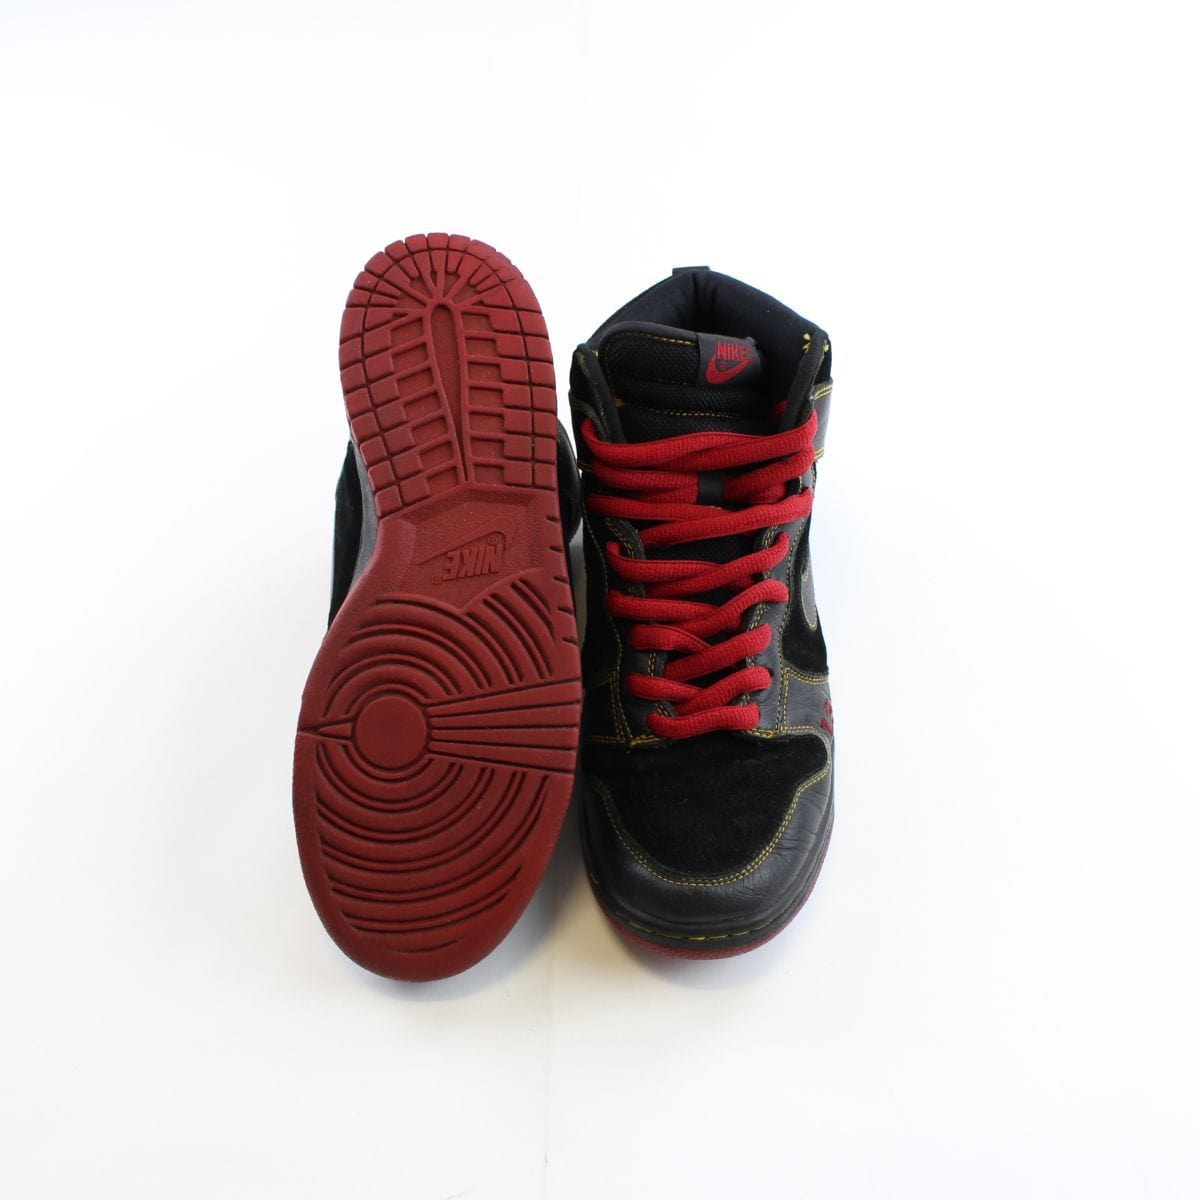 nike dunk sb high unlucky 13 | SaruGeneral